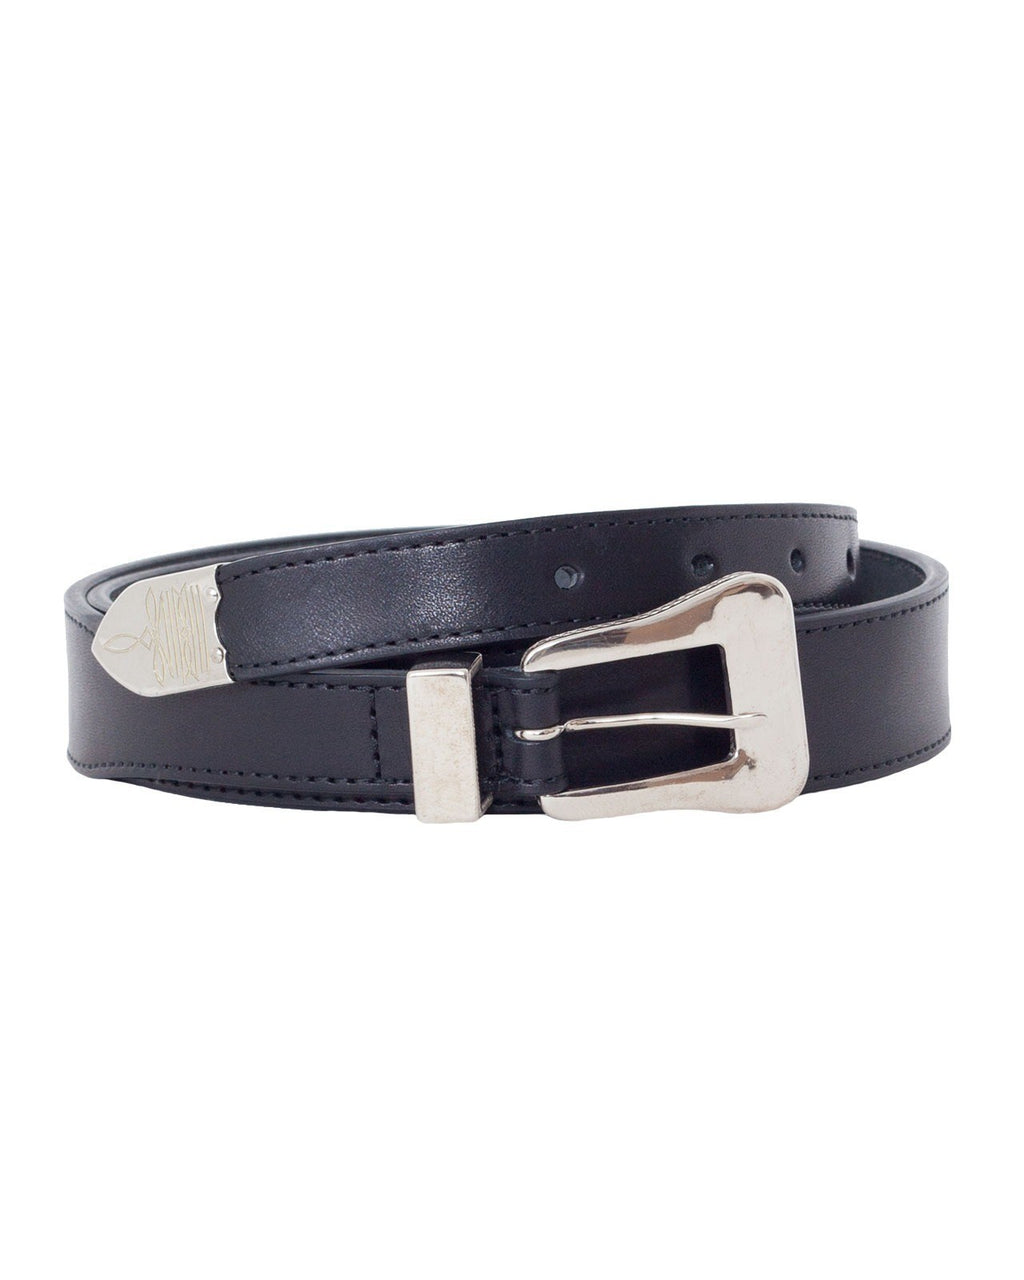 The Letters Twisted Western 3 Piece Belt, Black